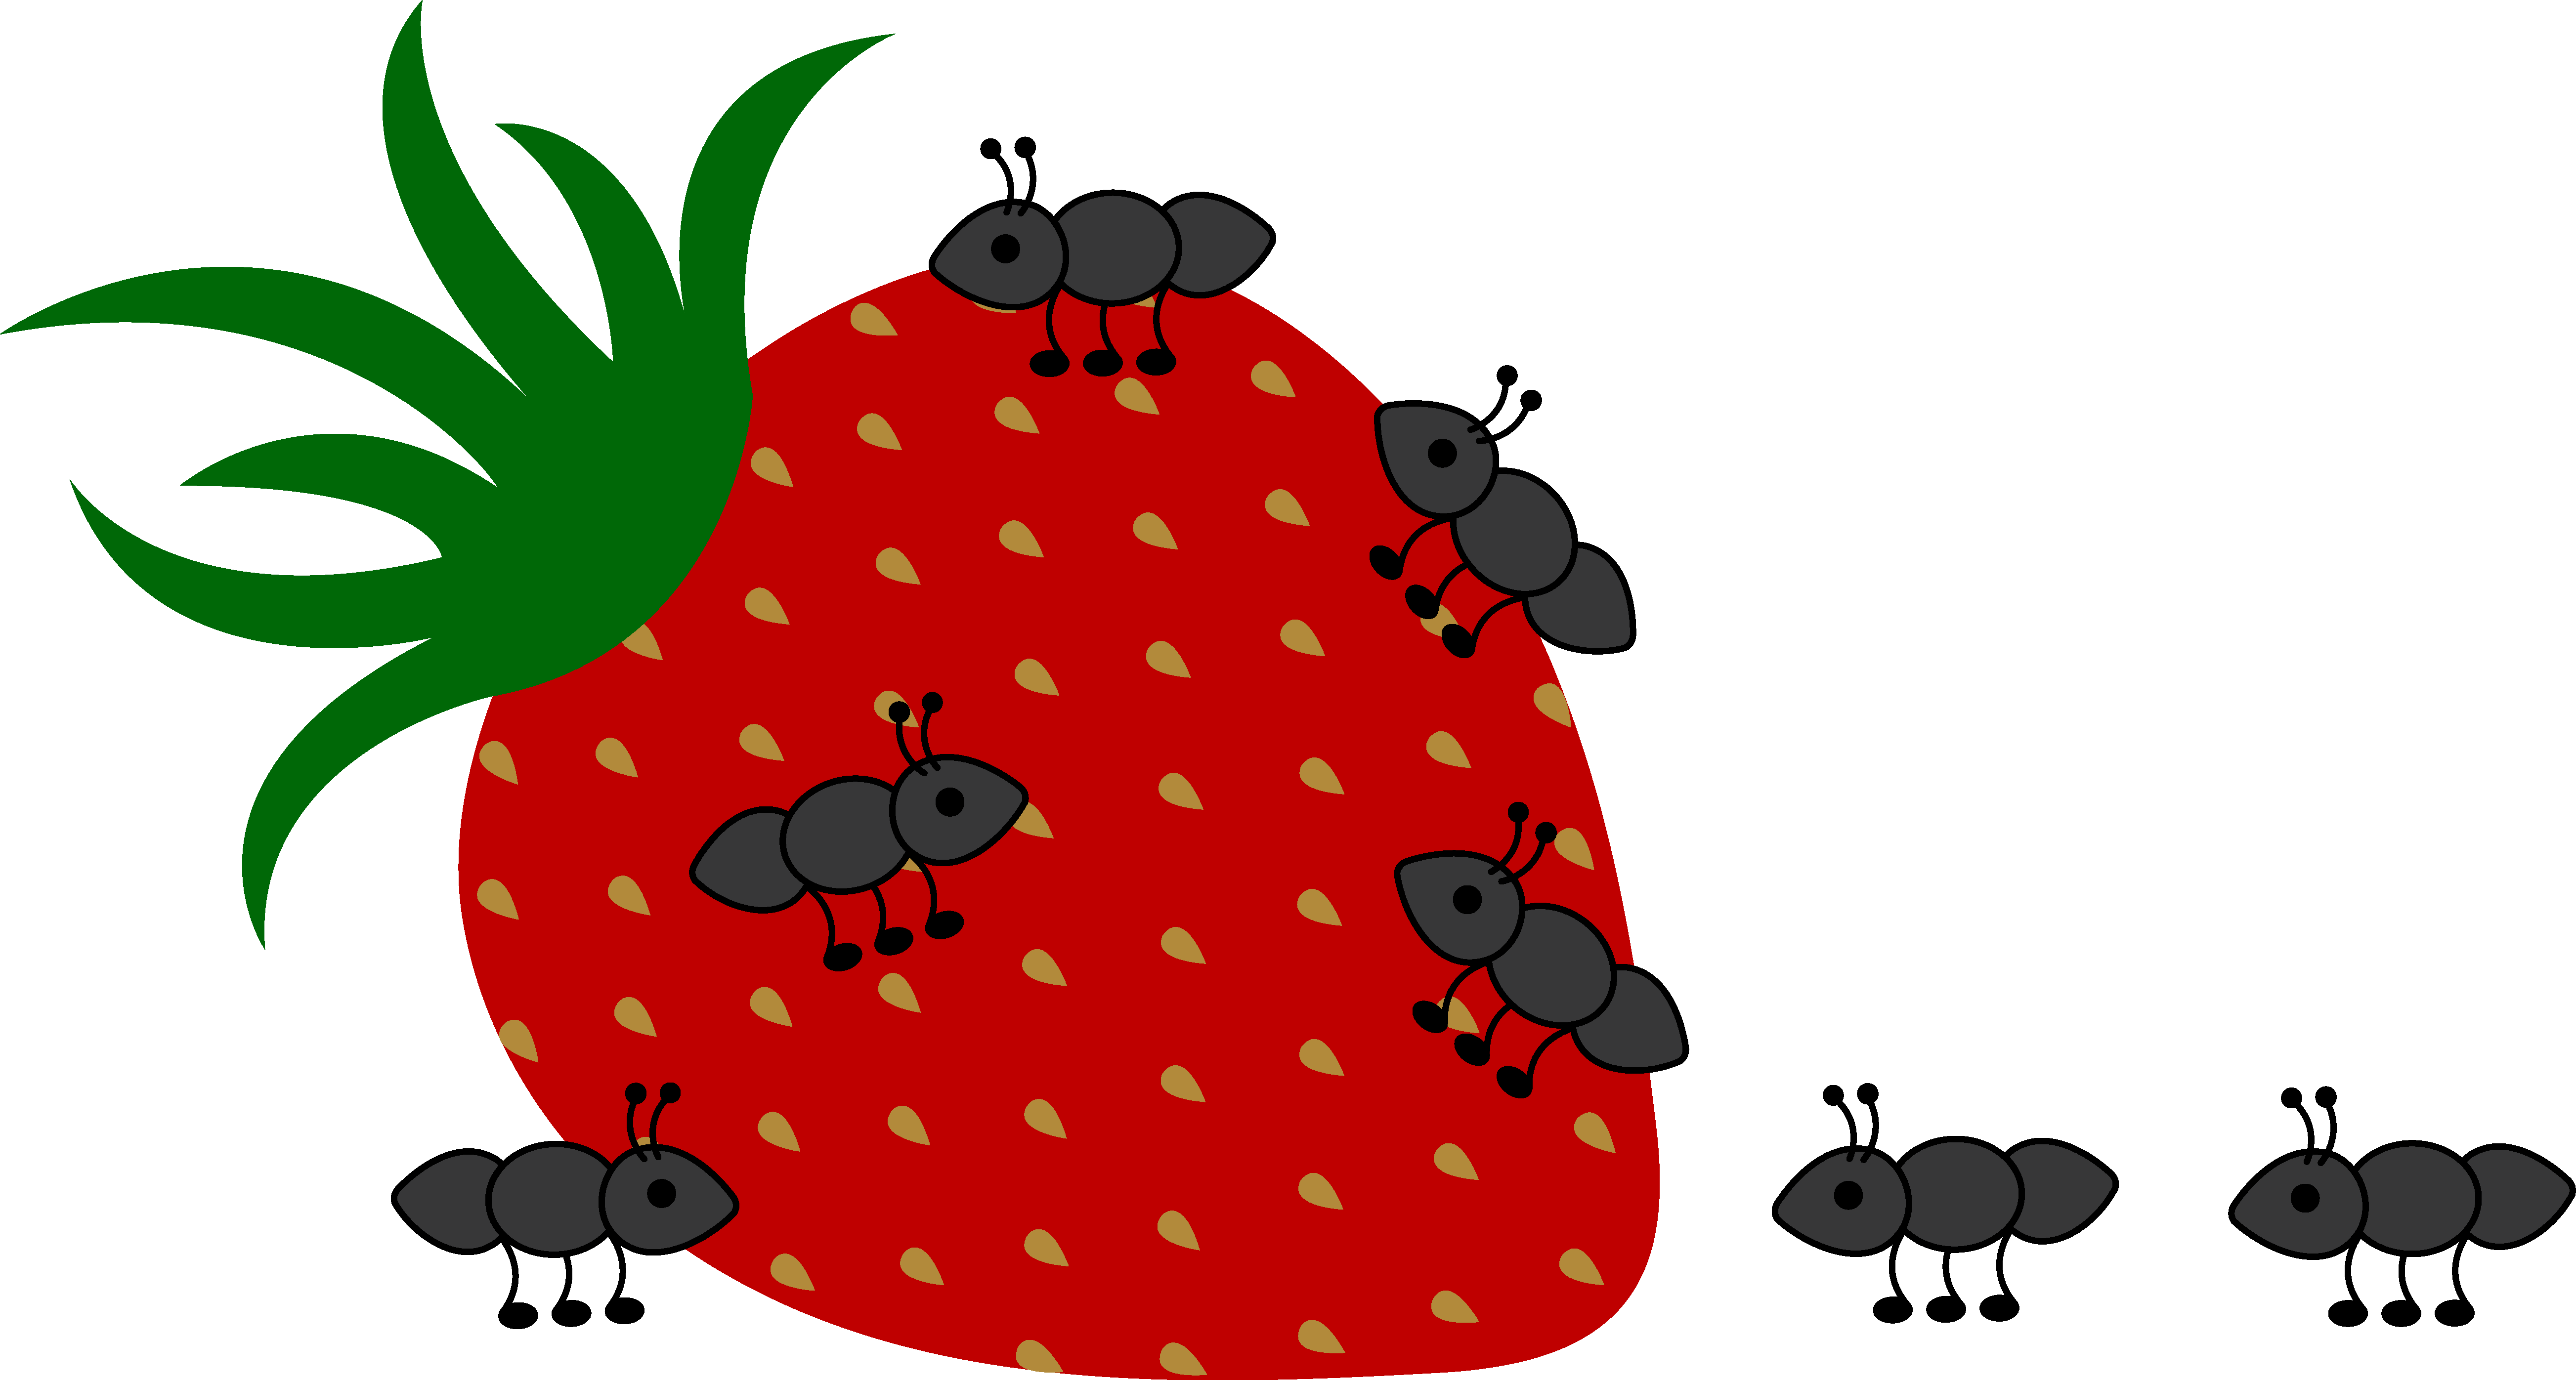 Lemons clipart strawberry. Picnic ants clip art